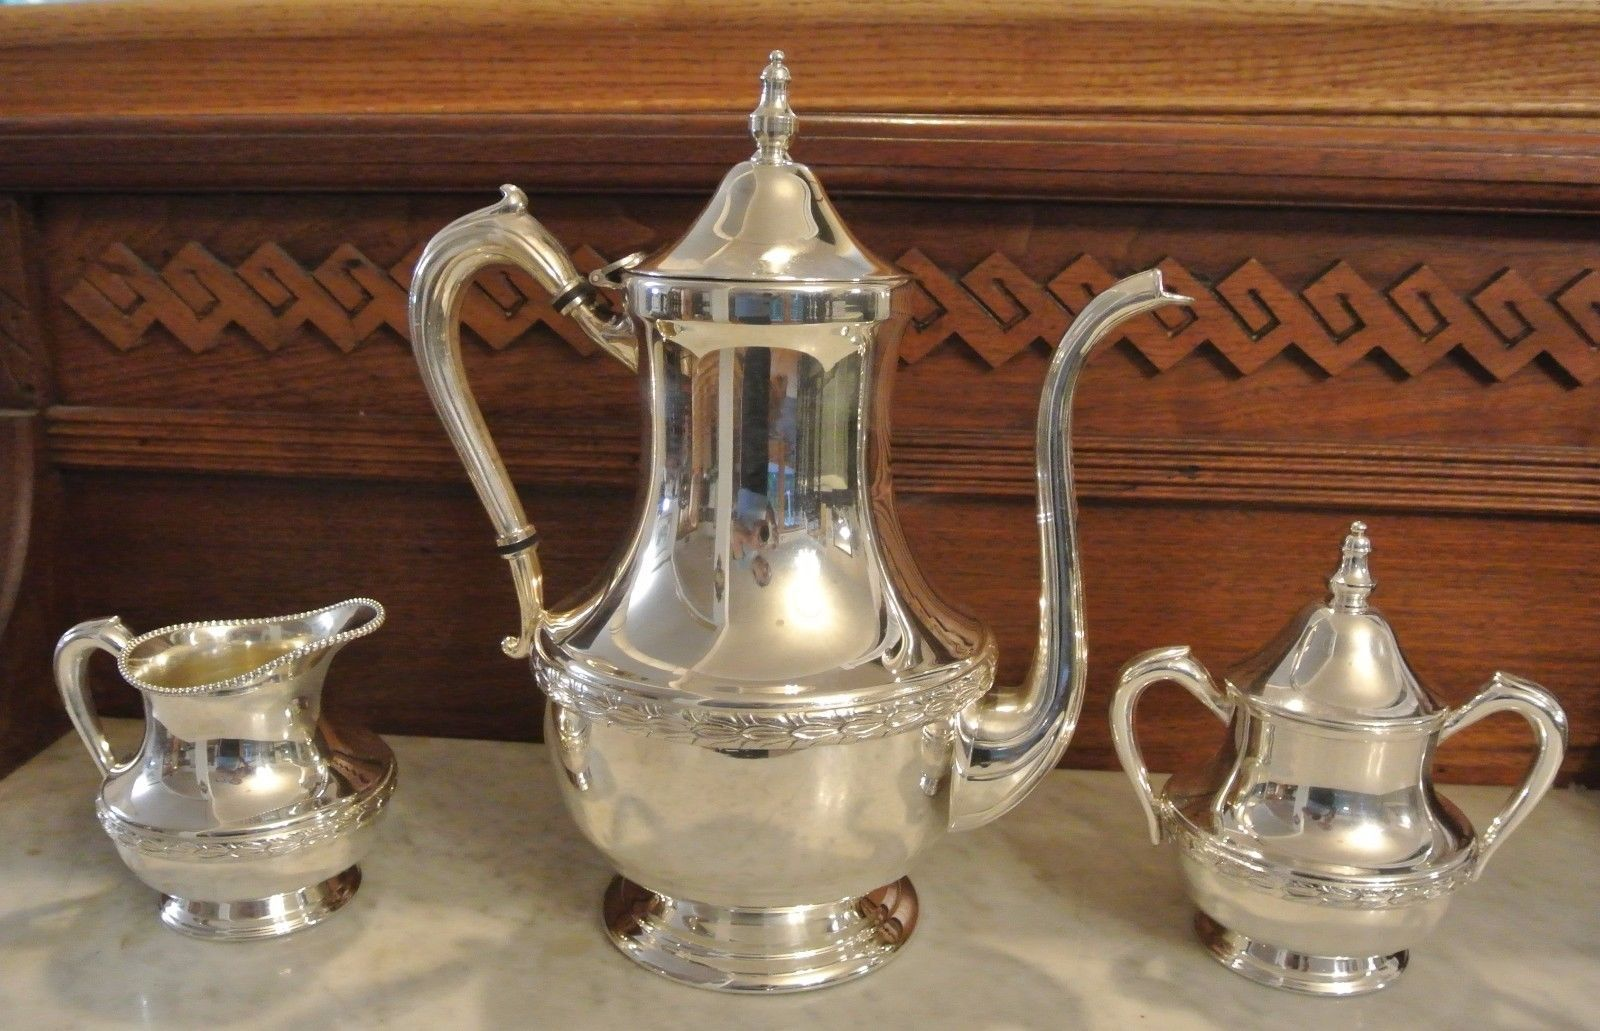 Good condition no dents Stunning Home Decor Bright Silver